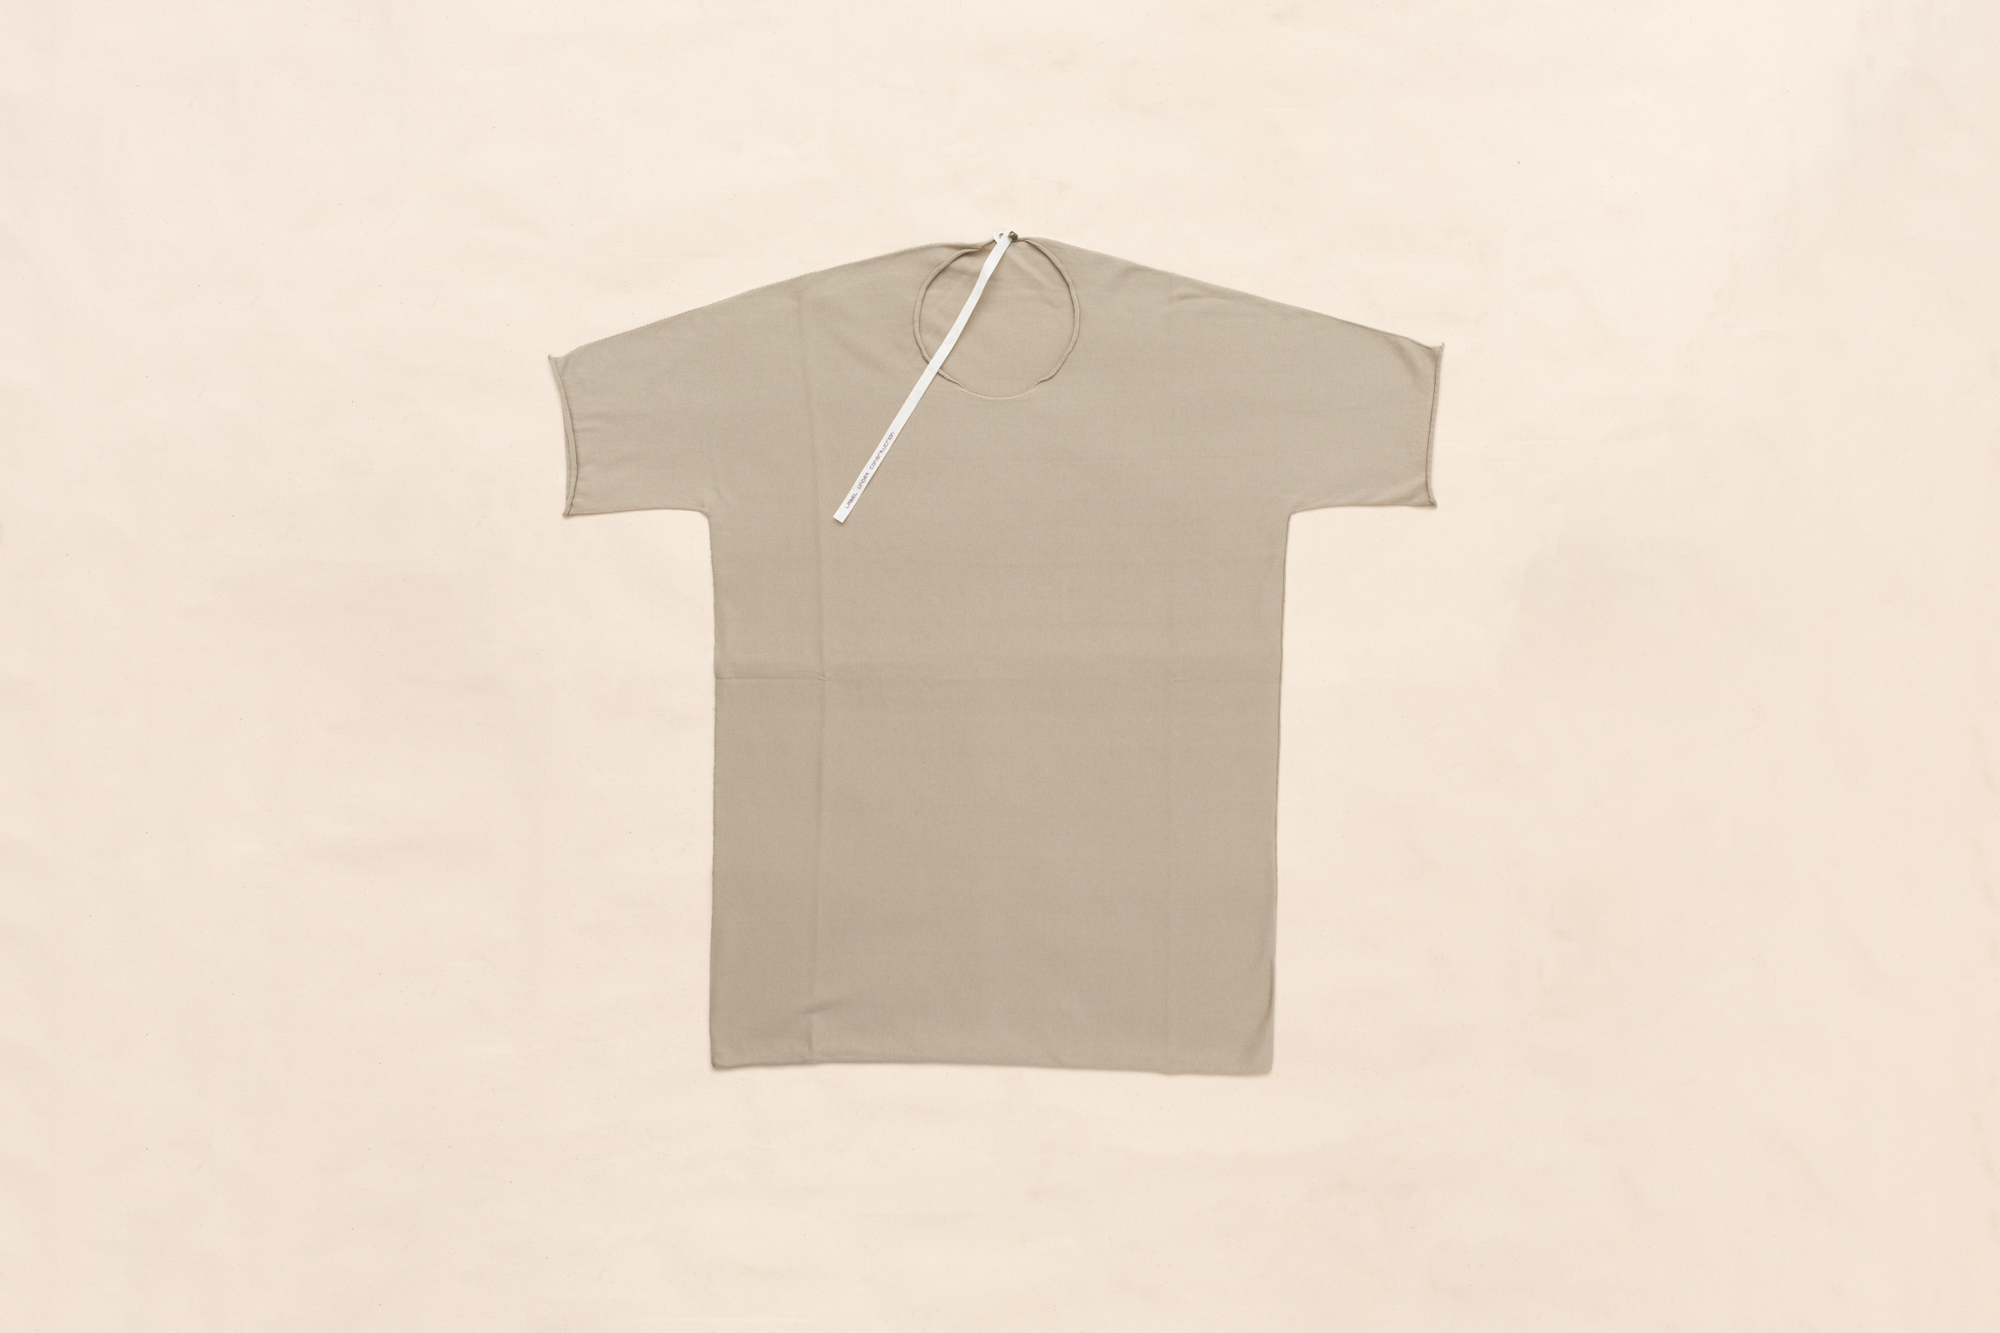 ARCHED T-SHIRT33/3